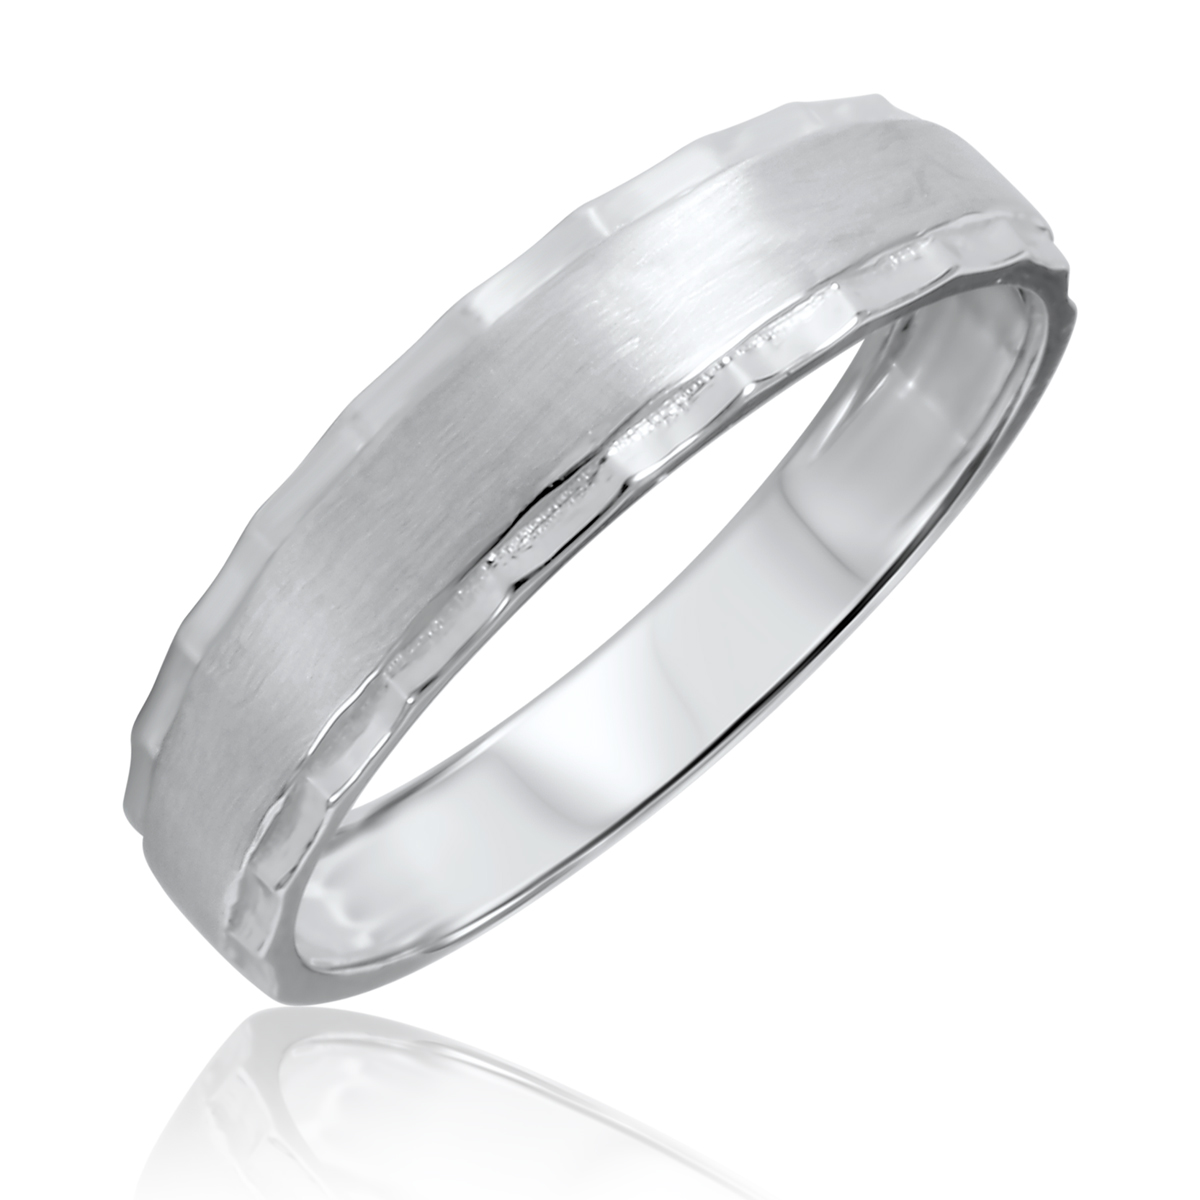 Traditional Satin Finished, 5 millimeter, 10K White Gold Traditional Mens